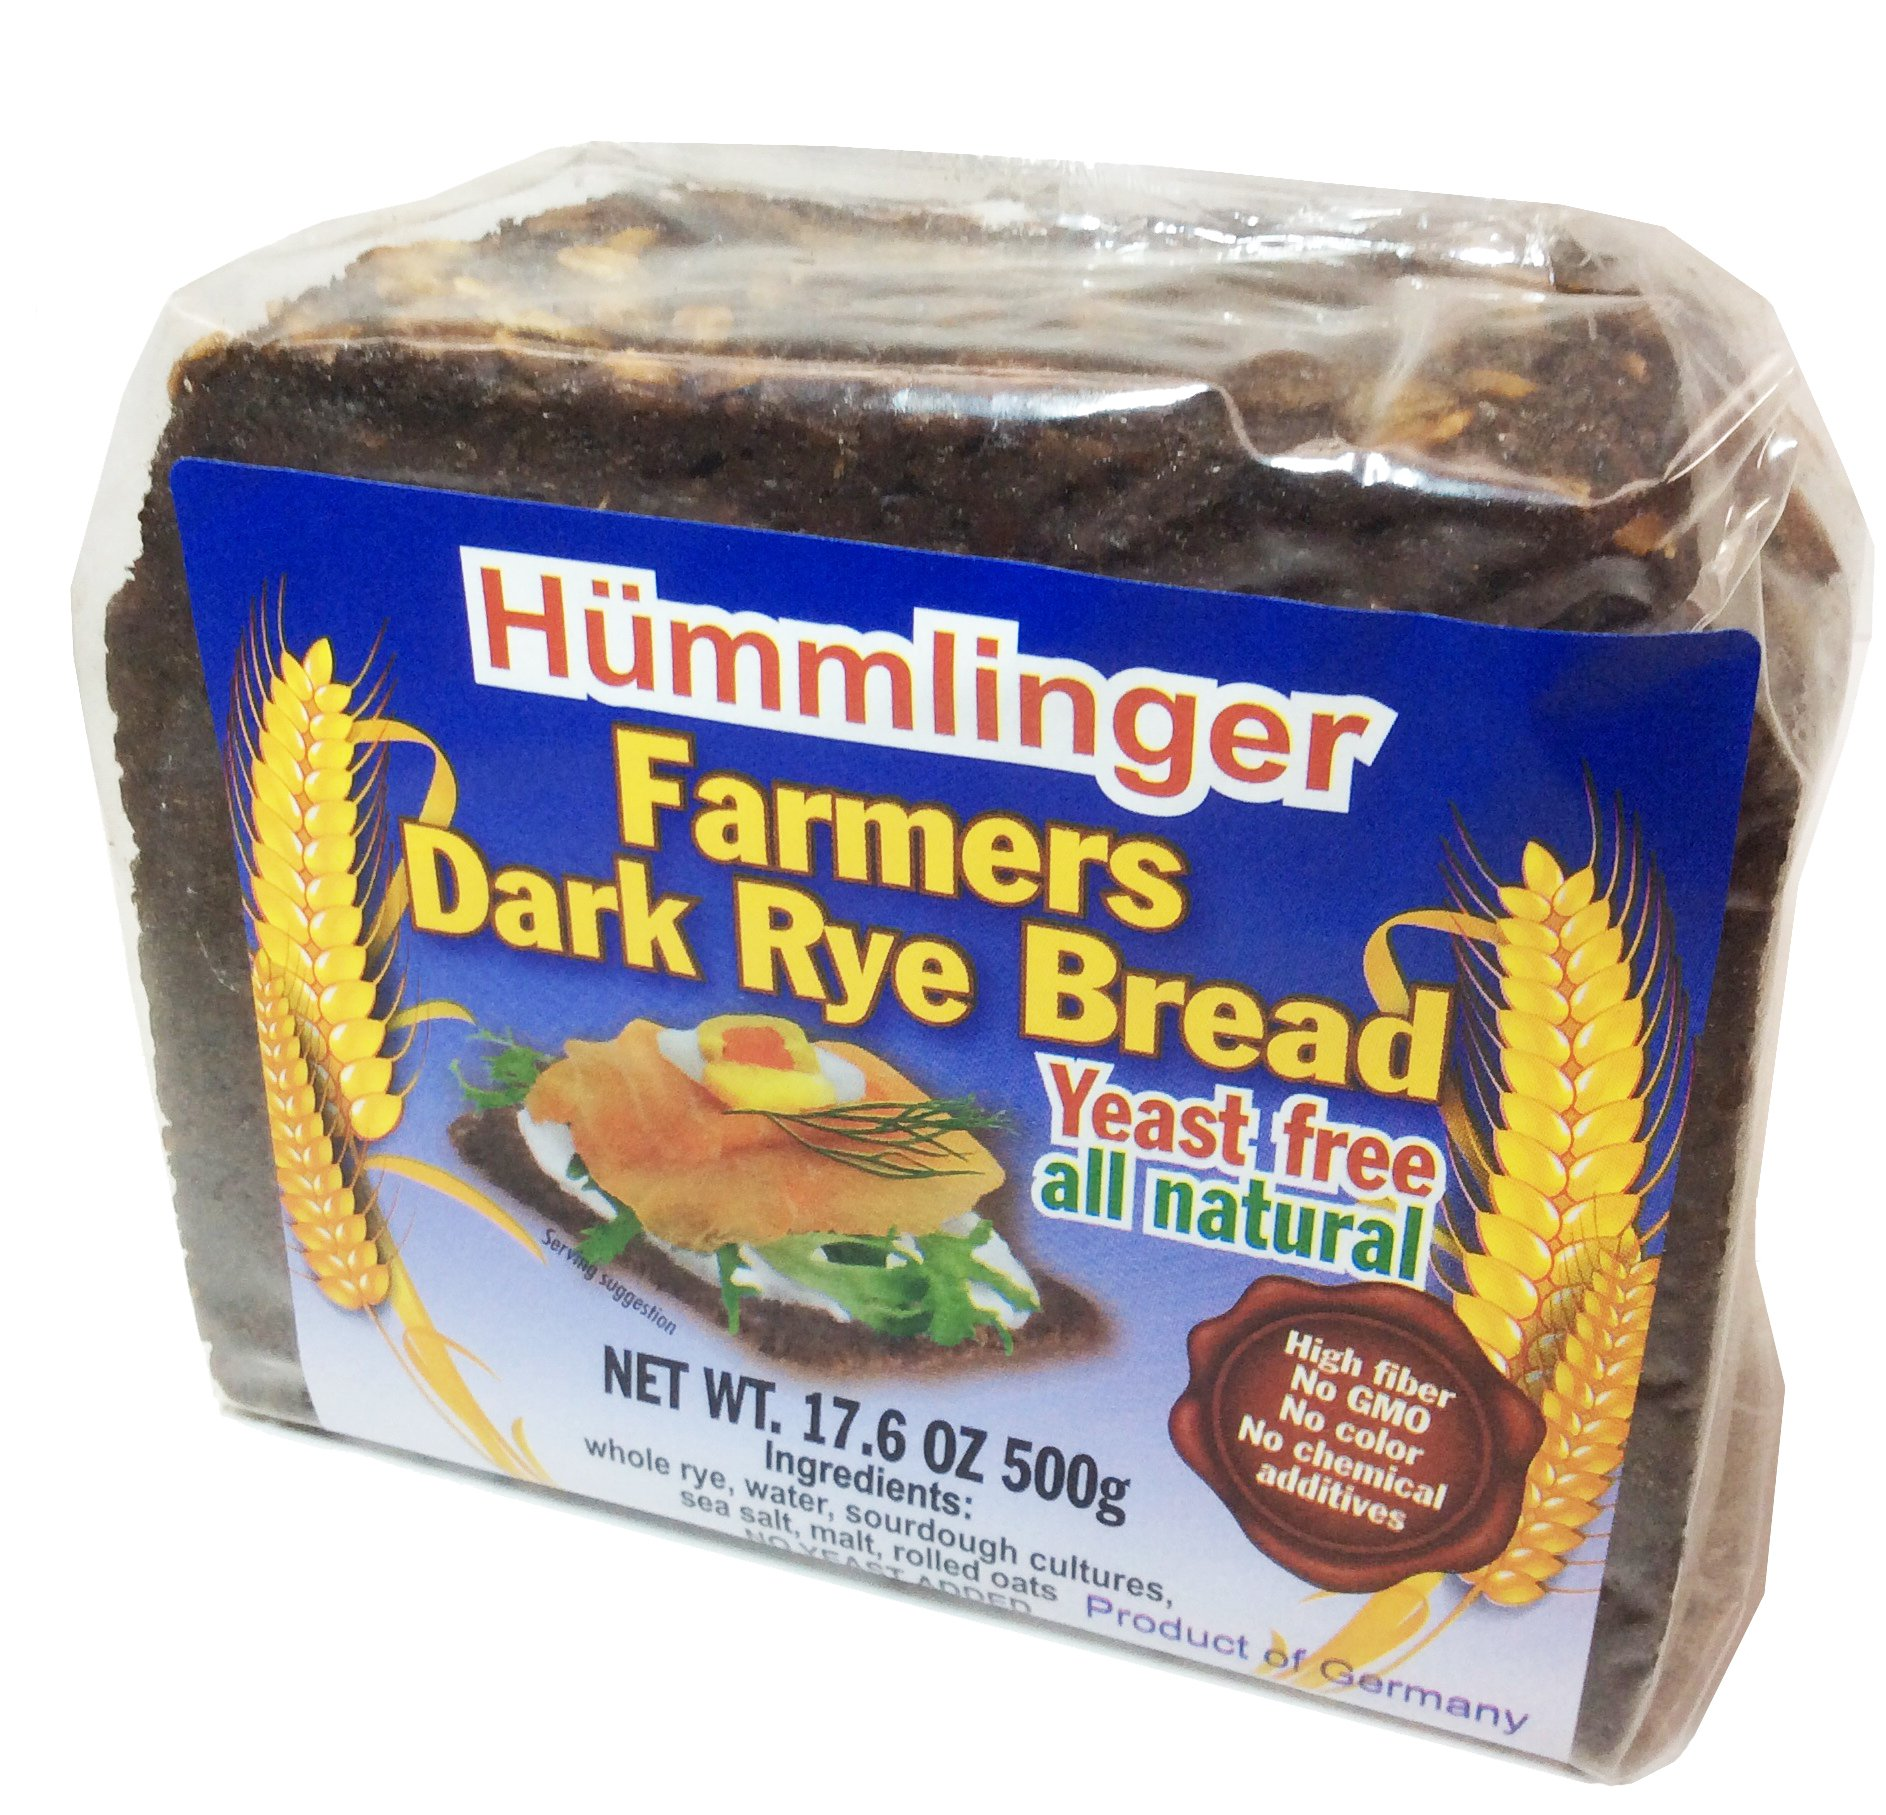 Hummlinger Yeast Free Bread, Farmers Dark Rye,GMO FREE 17.6 oz (6 packs) by Hummlinger Bread